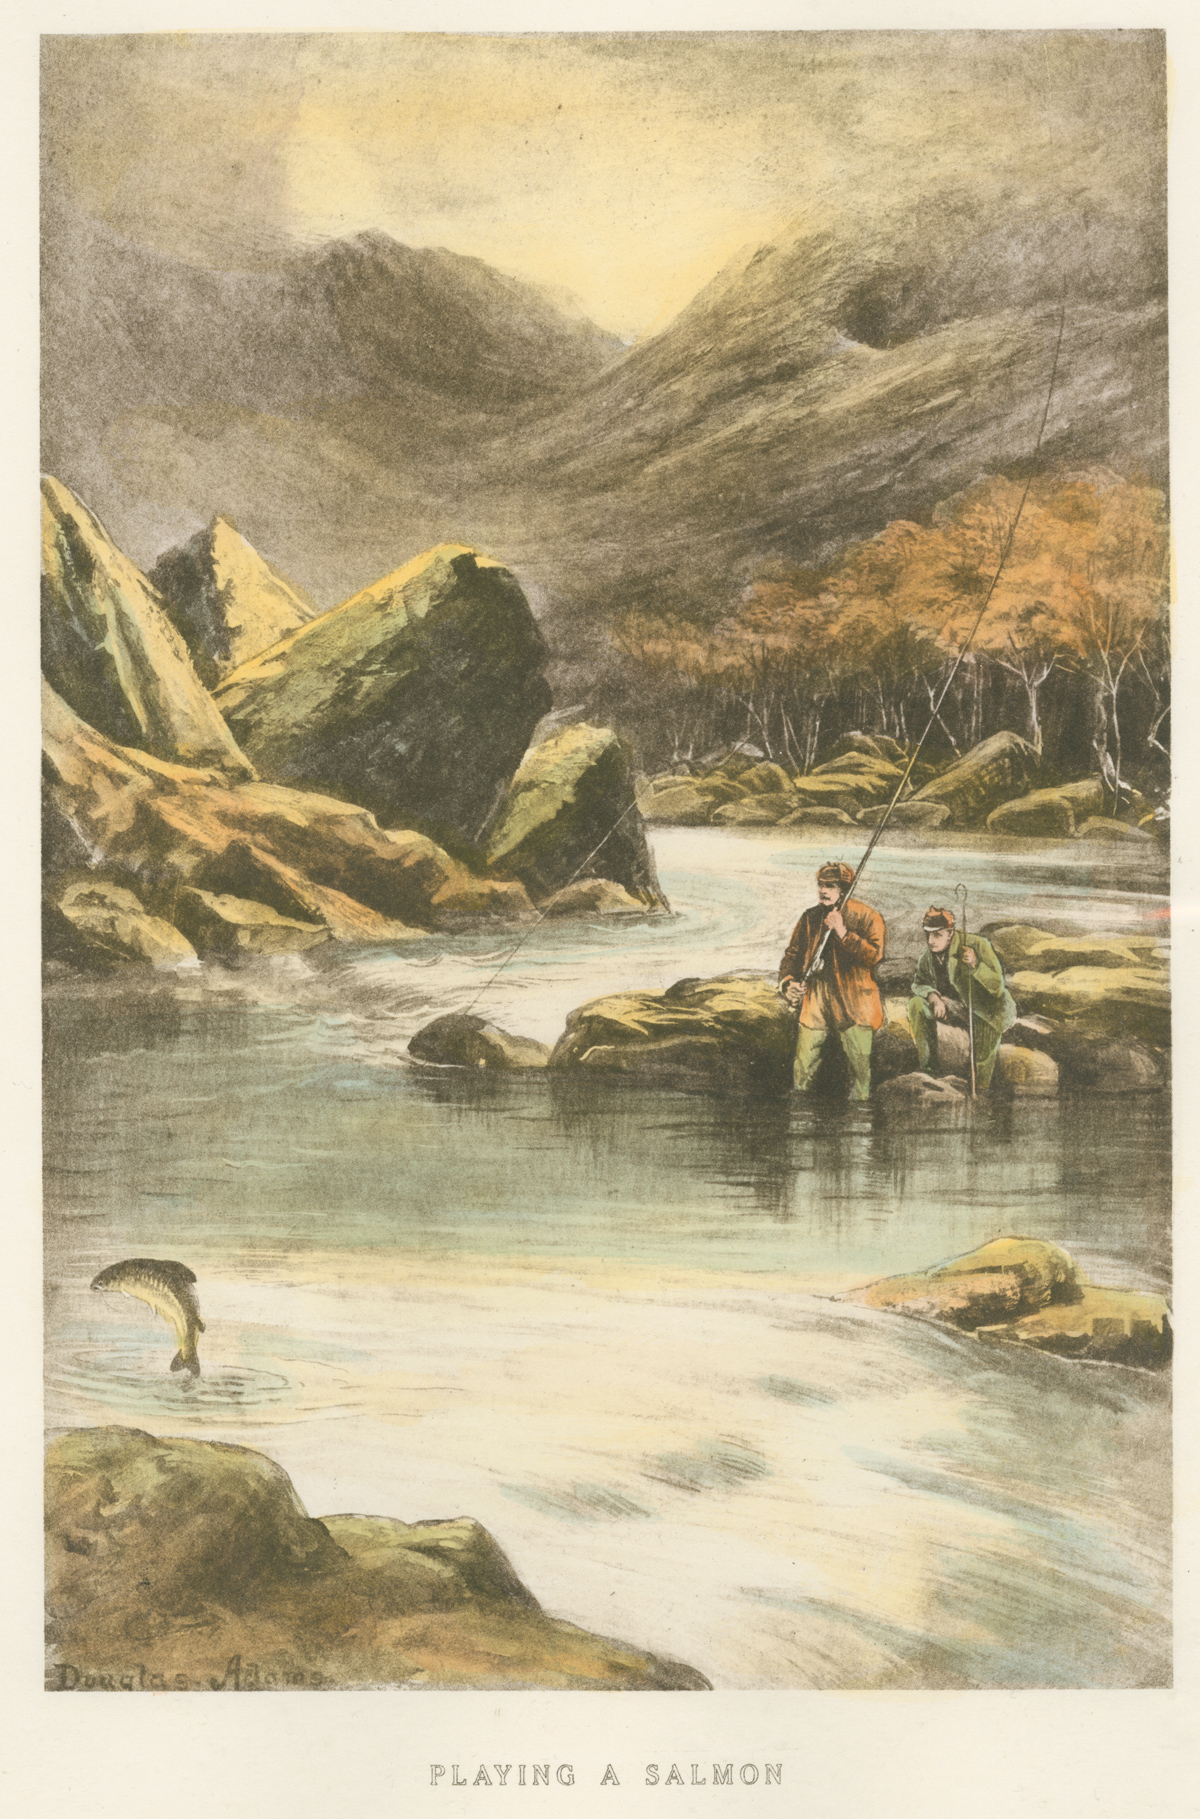 Engraving, Hand coloured restrike engraving, Playing a Salmon, click to enlarge